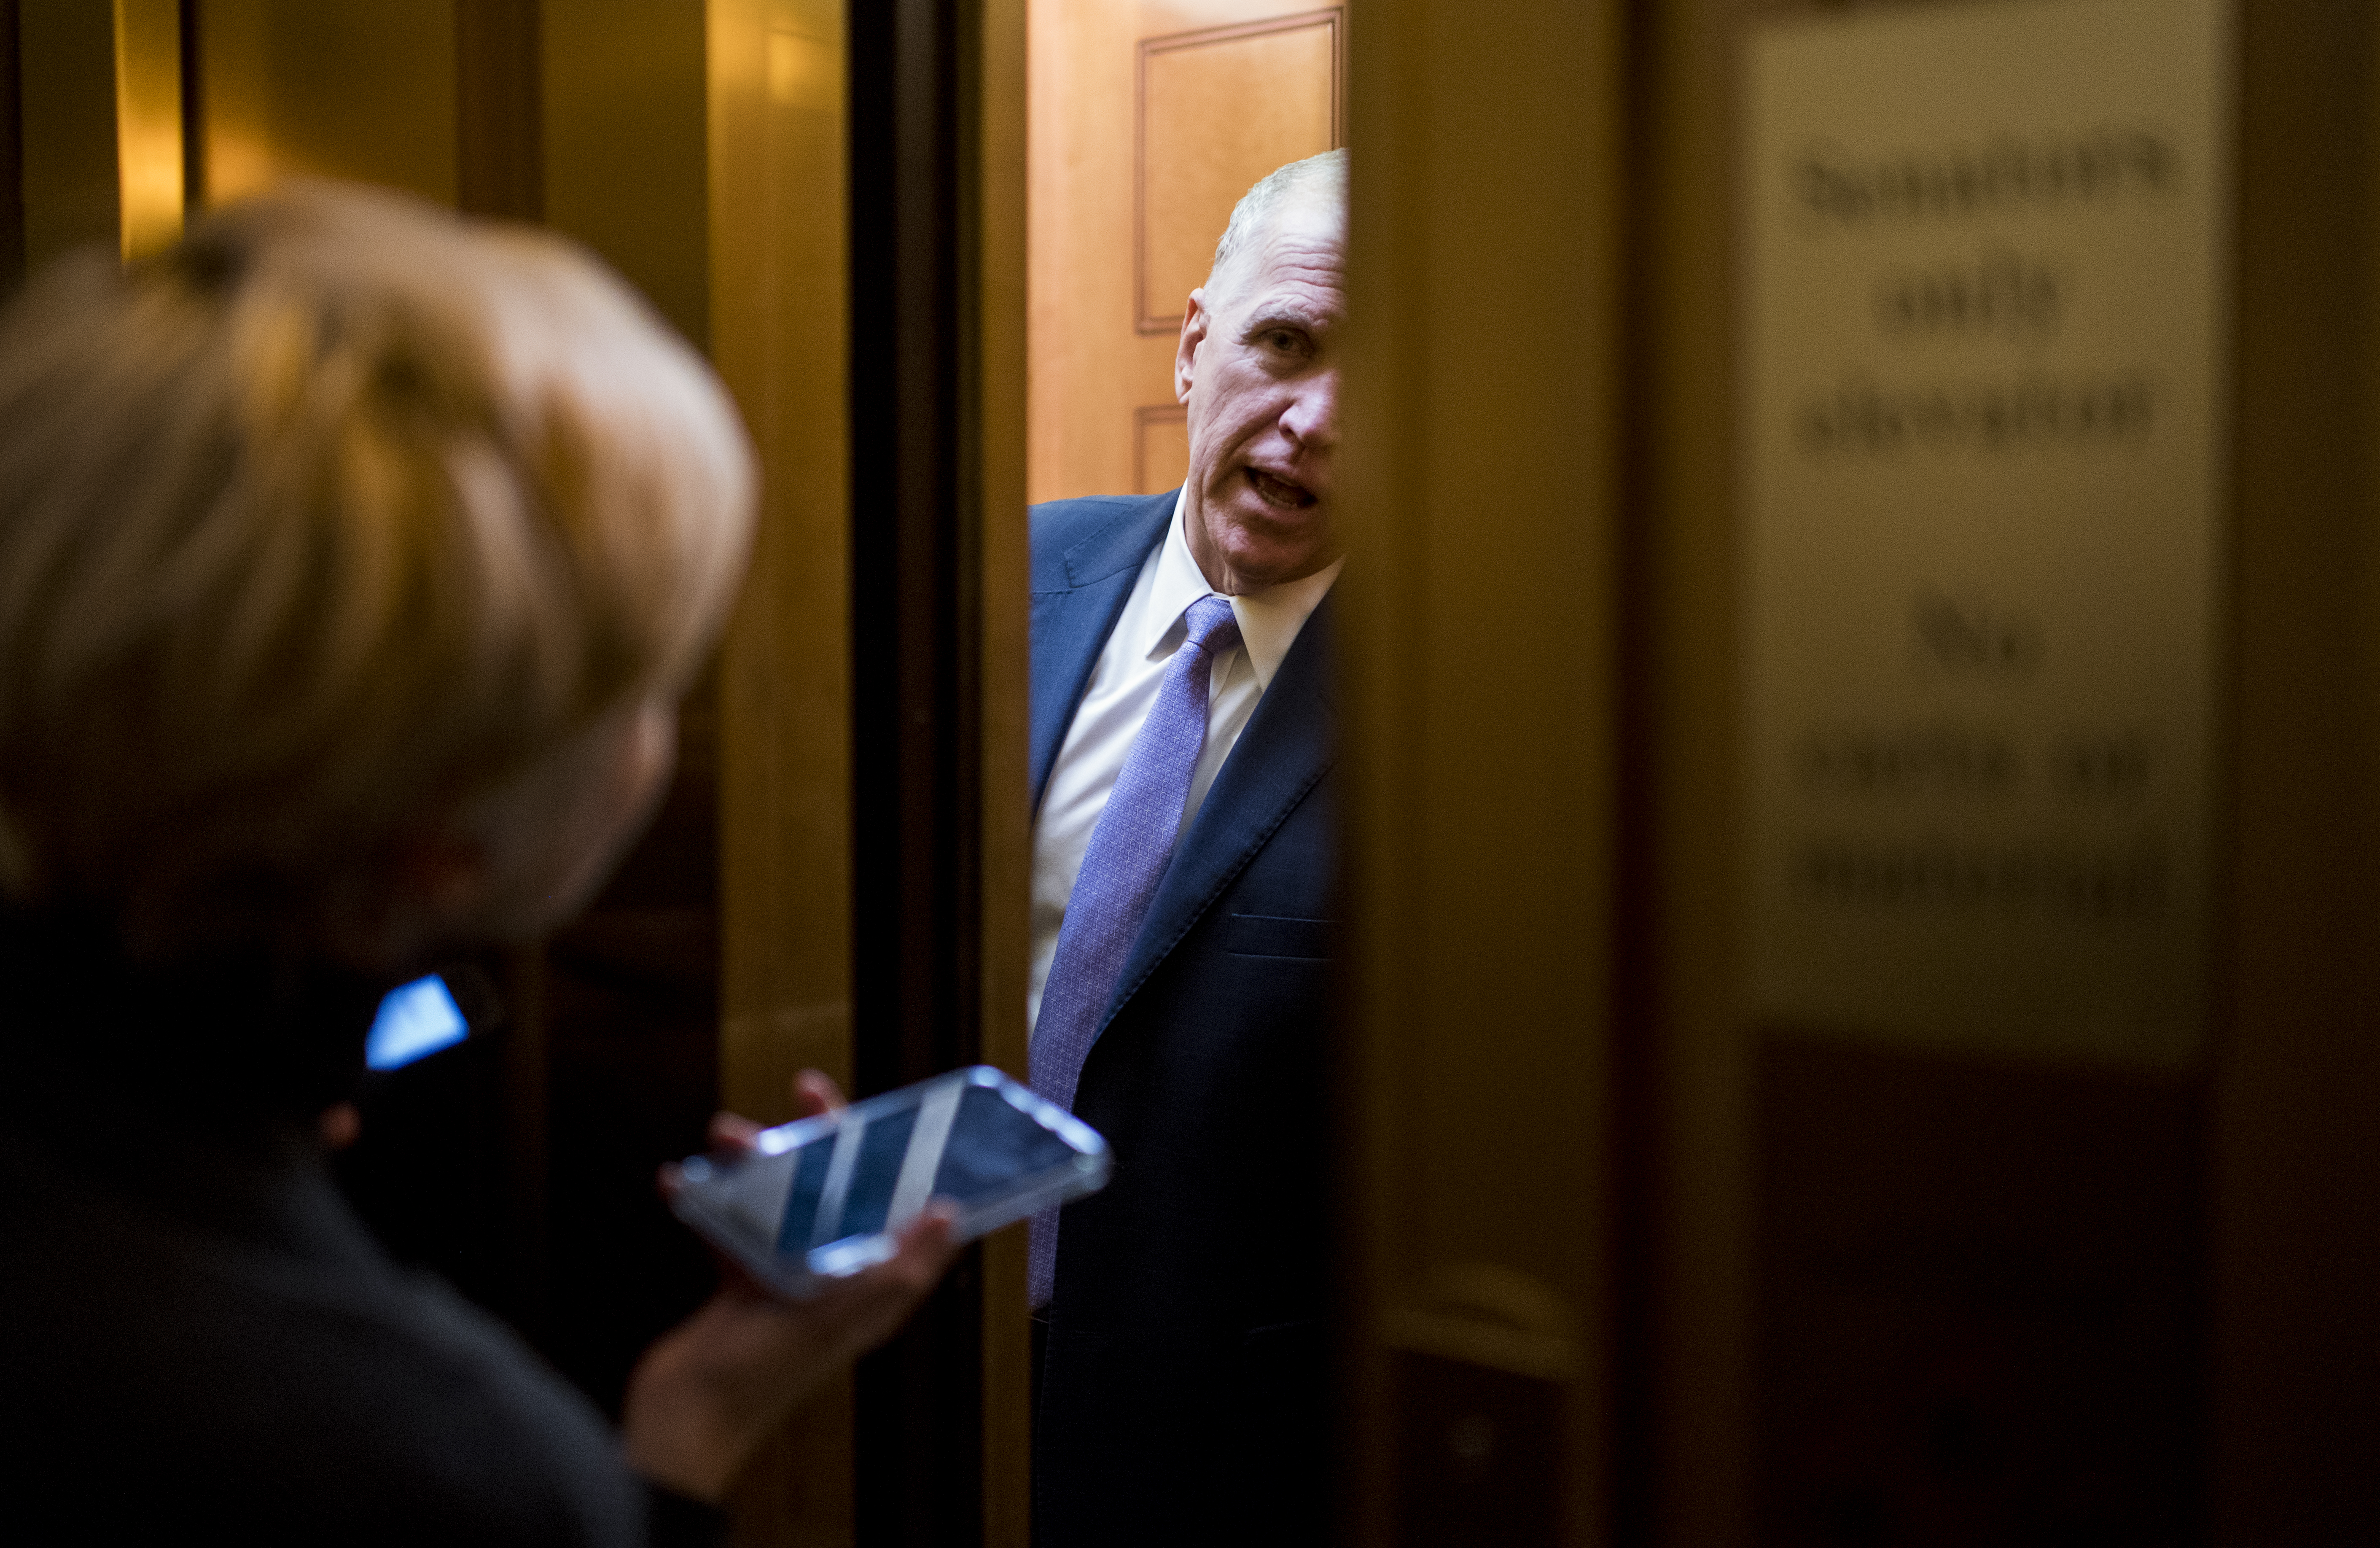 UNITED STATES - JANUARY 28: Sen. Thom Tillis, R-N.C., speaks with reporters through the closing elevator doors before the start of the Senate impeachment trial proceedings on Tuesday, Jan. 28, 2020. (Photo By Bill Clark/CQ Roll Call)